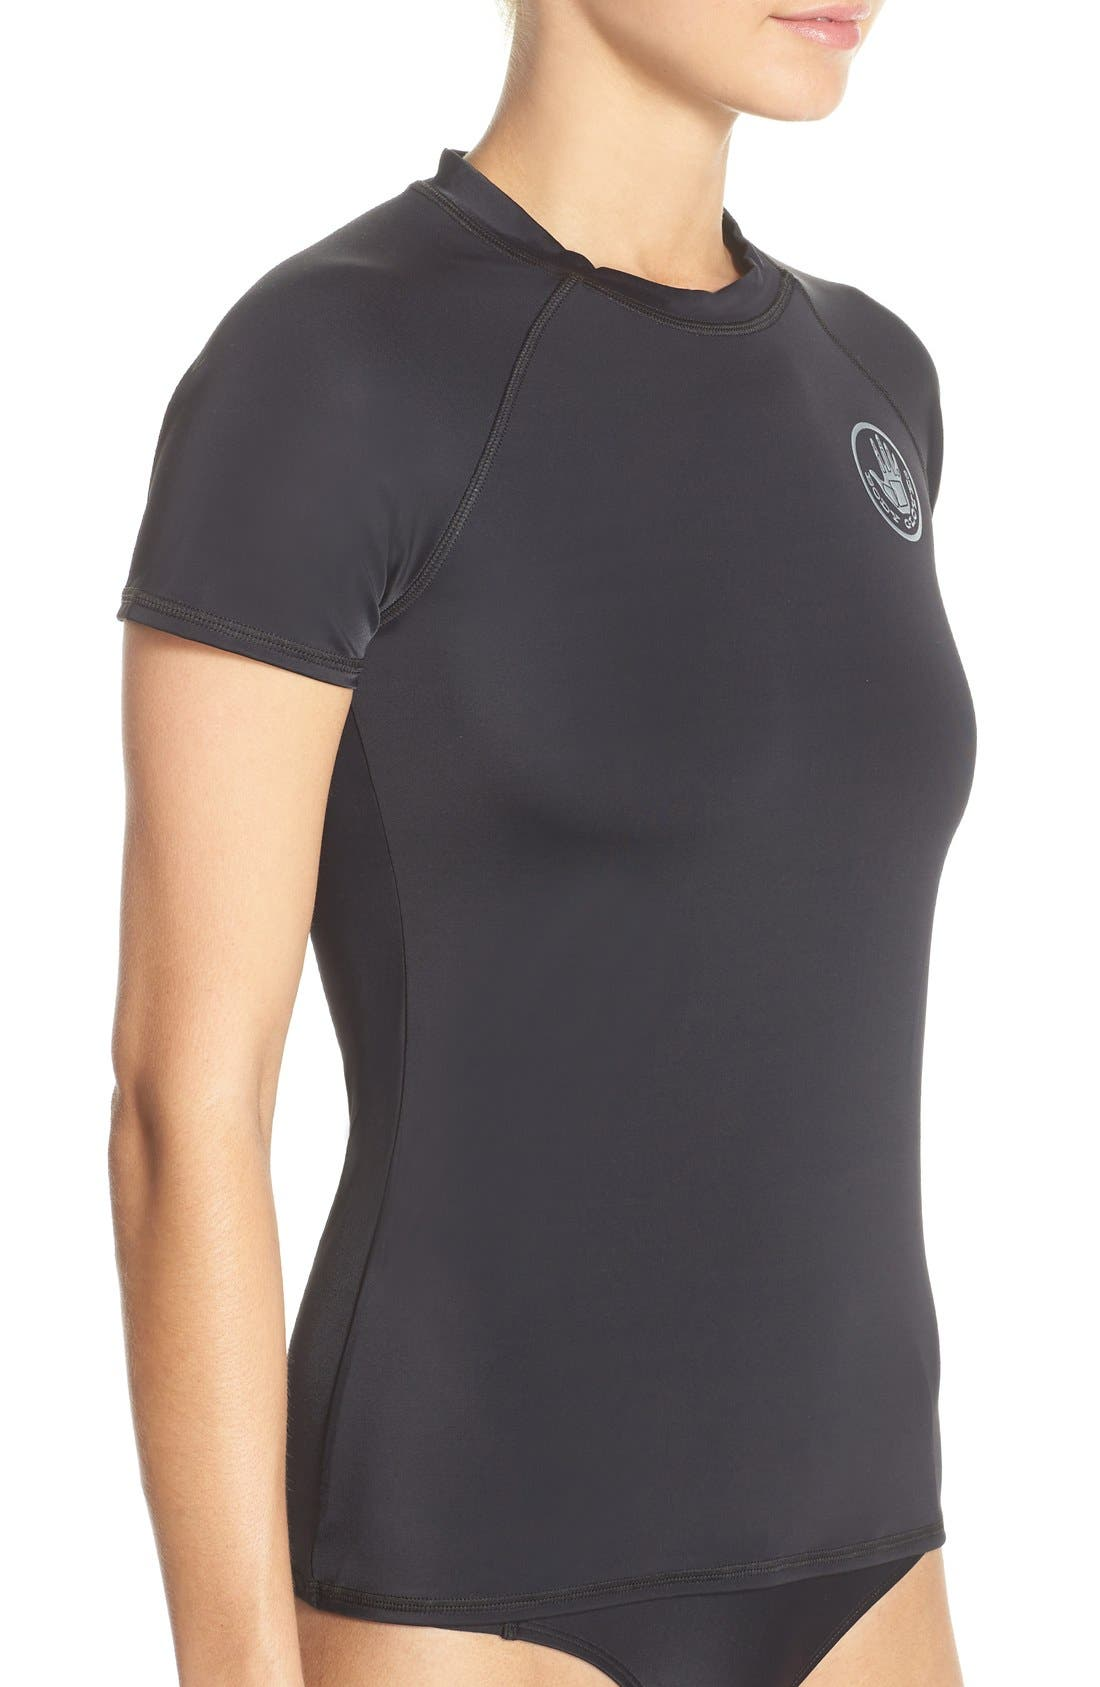 'Smoothies in Motion' Short Sleeve Rashguard,                             Alternate thumbnail 14, color,